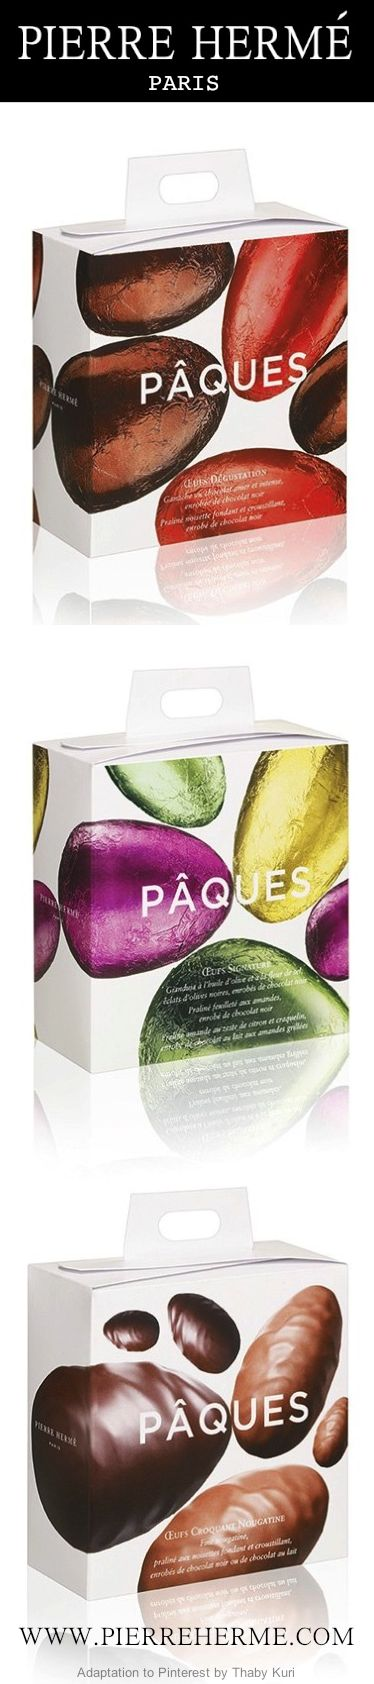 PIERRE HERME Pâques Chocolate Pralines #chocolate #packaging #gourmandises